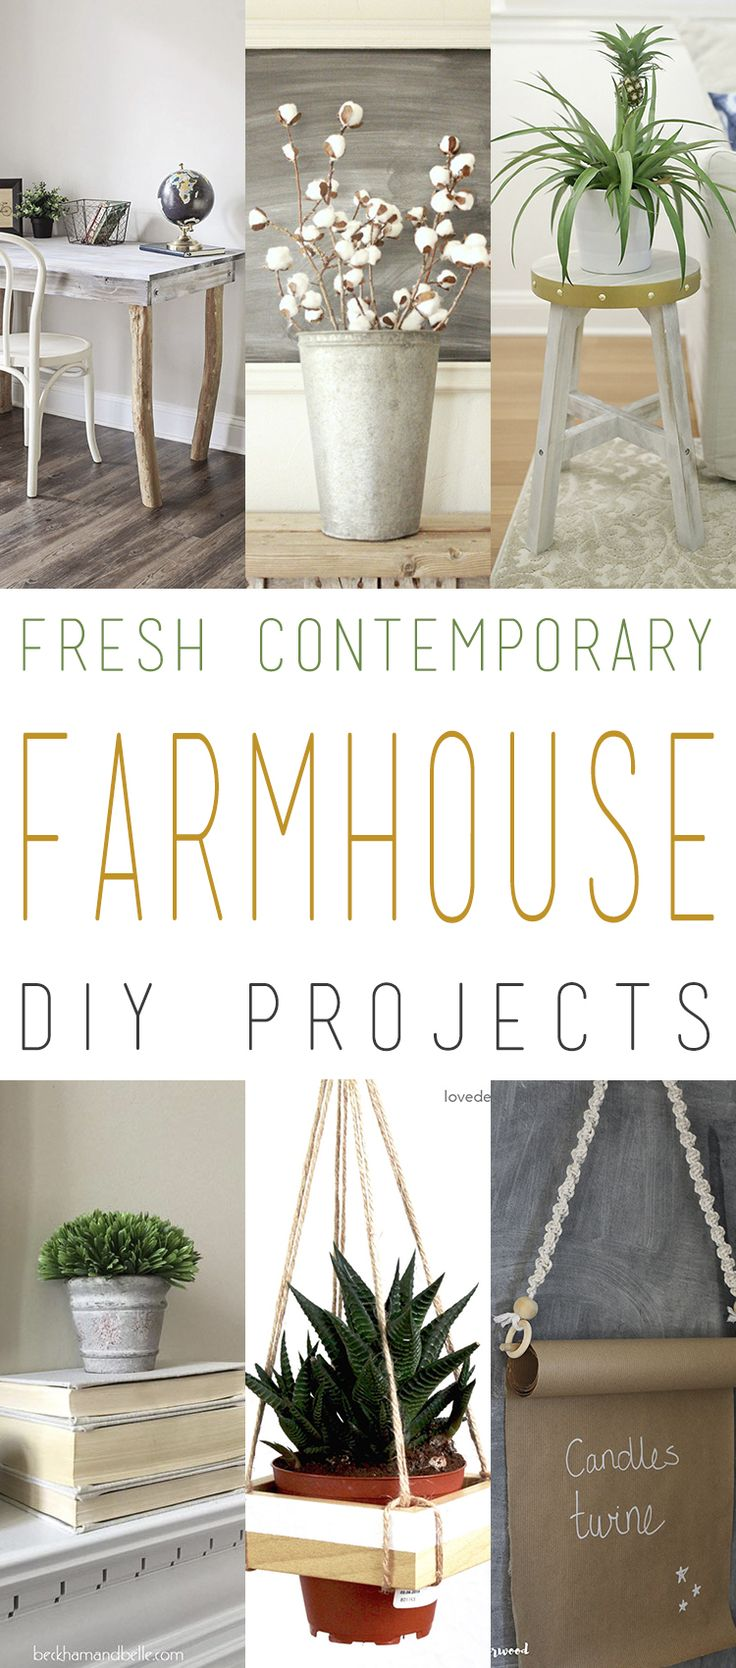 Fresh Contemporary Farmhouse DIY Projects!